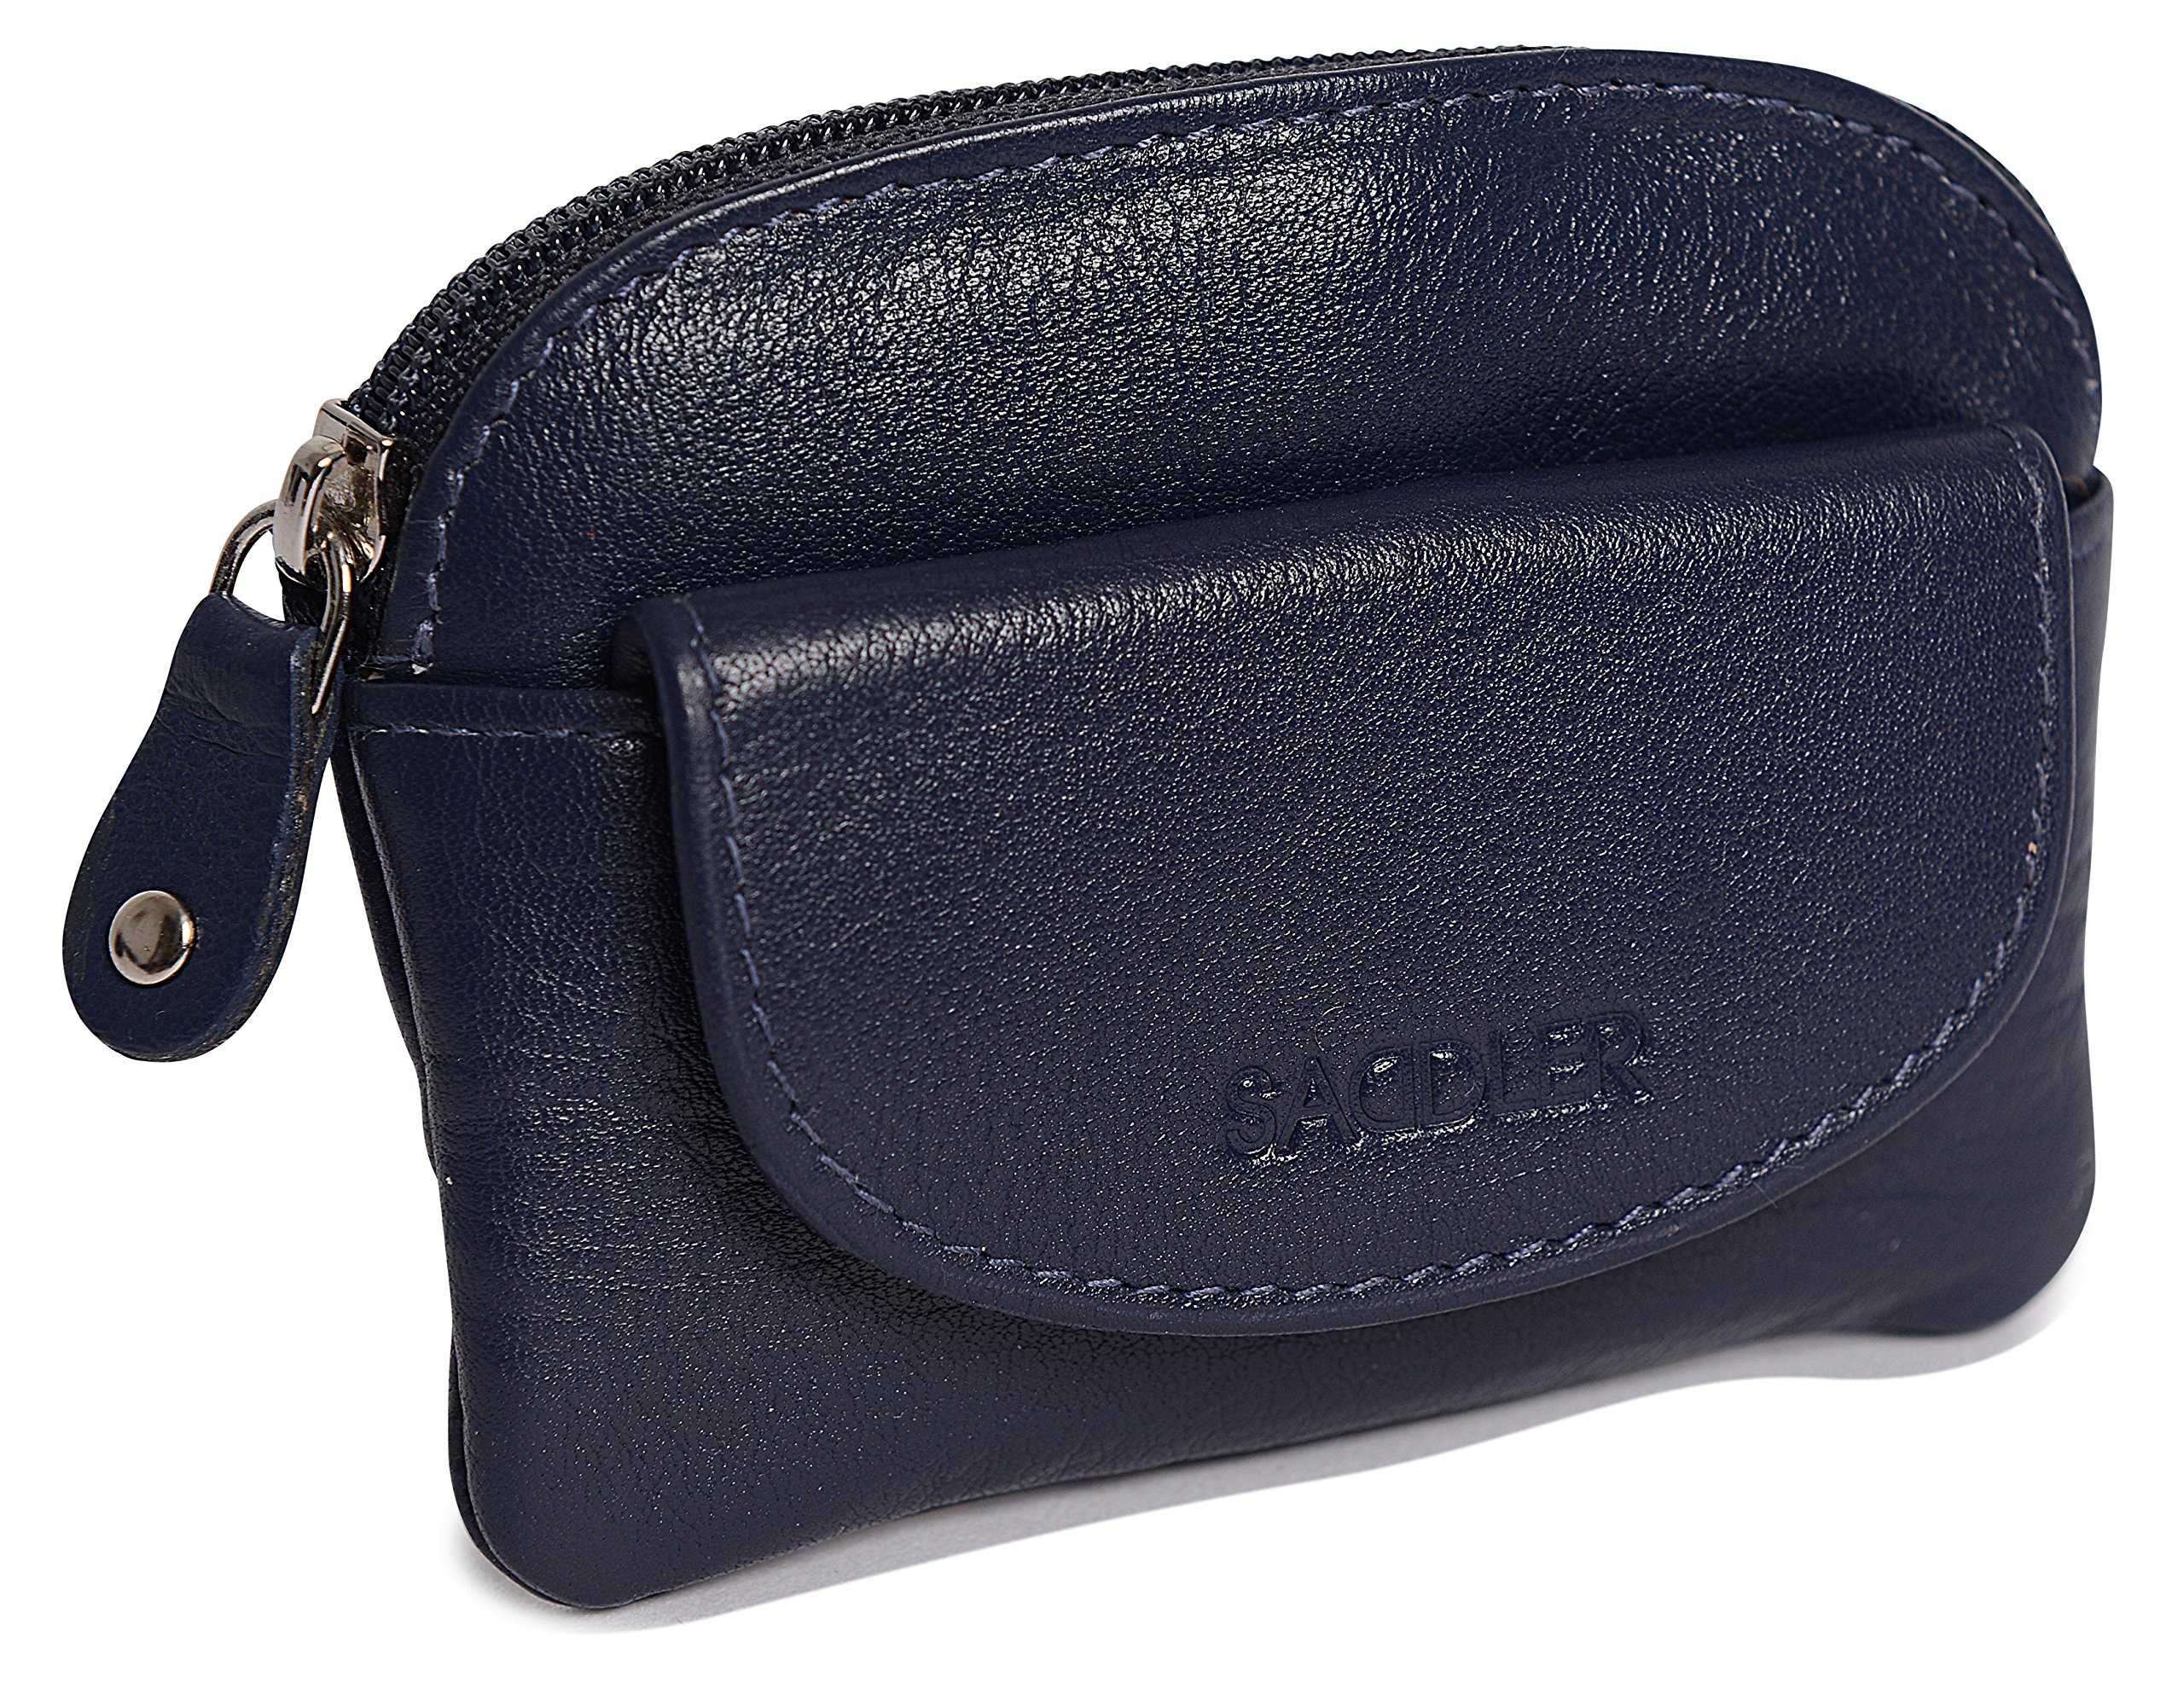 SADDLER Womens Leather Zip Top Coins Key Purse Front Flap Pocket - Peacoat Blue